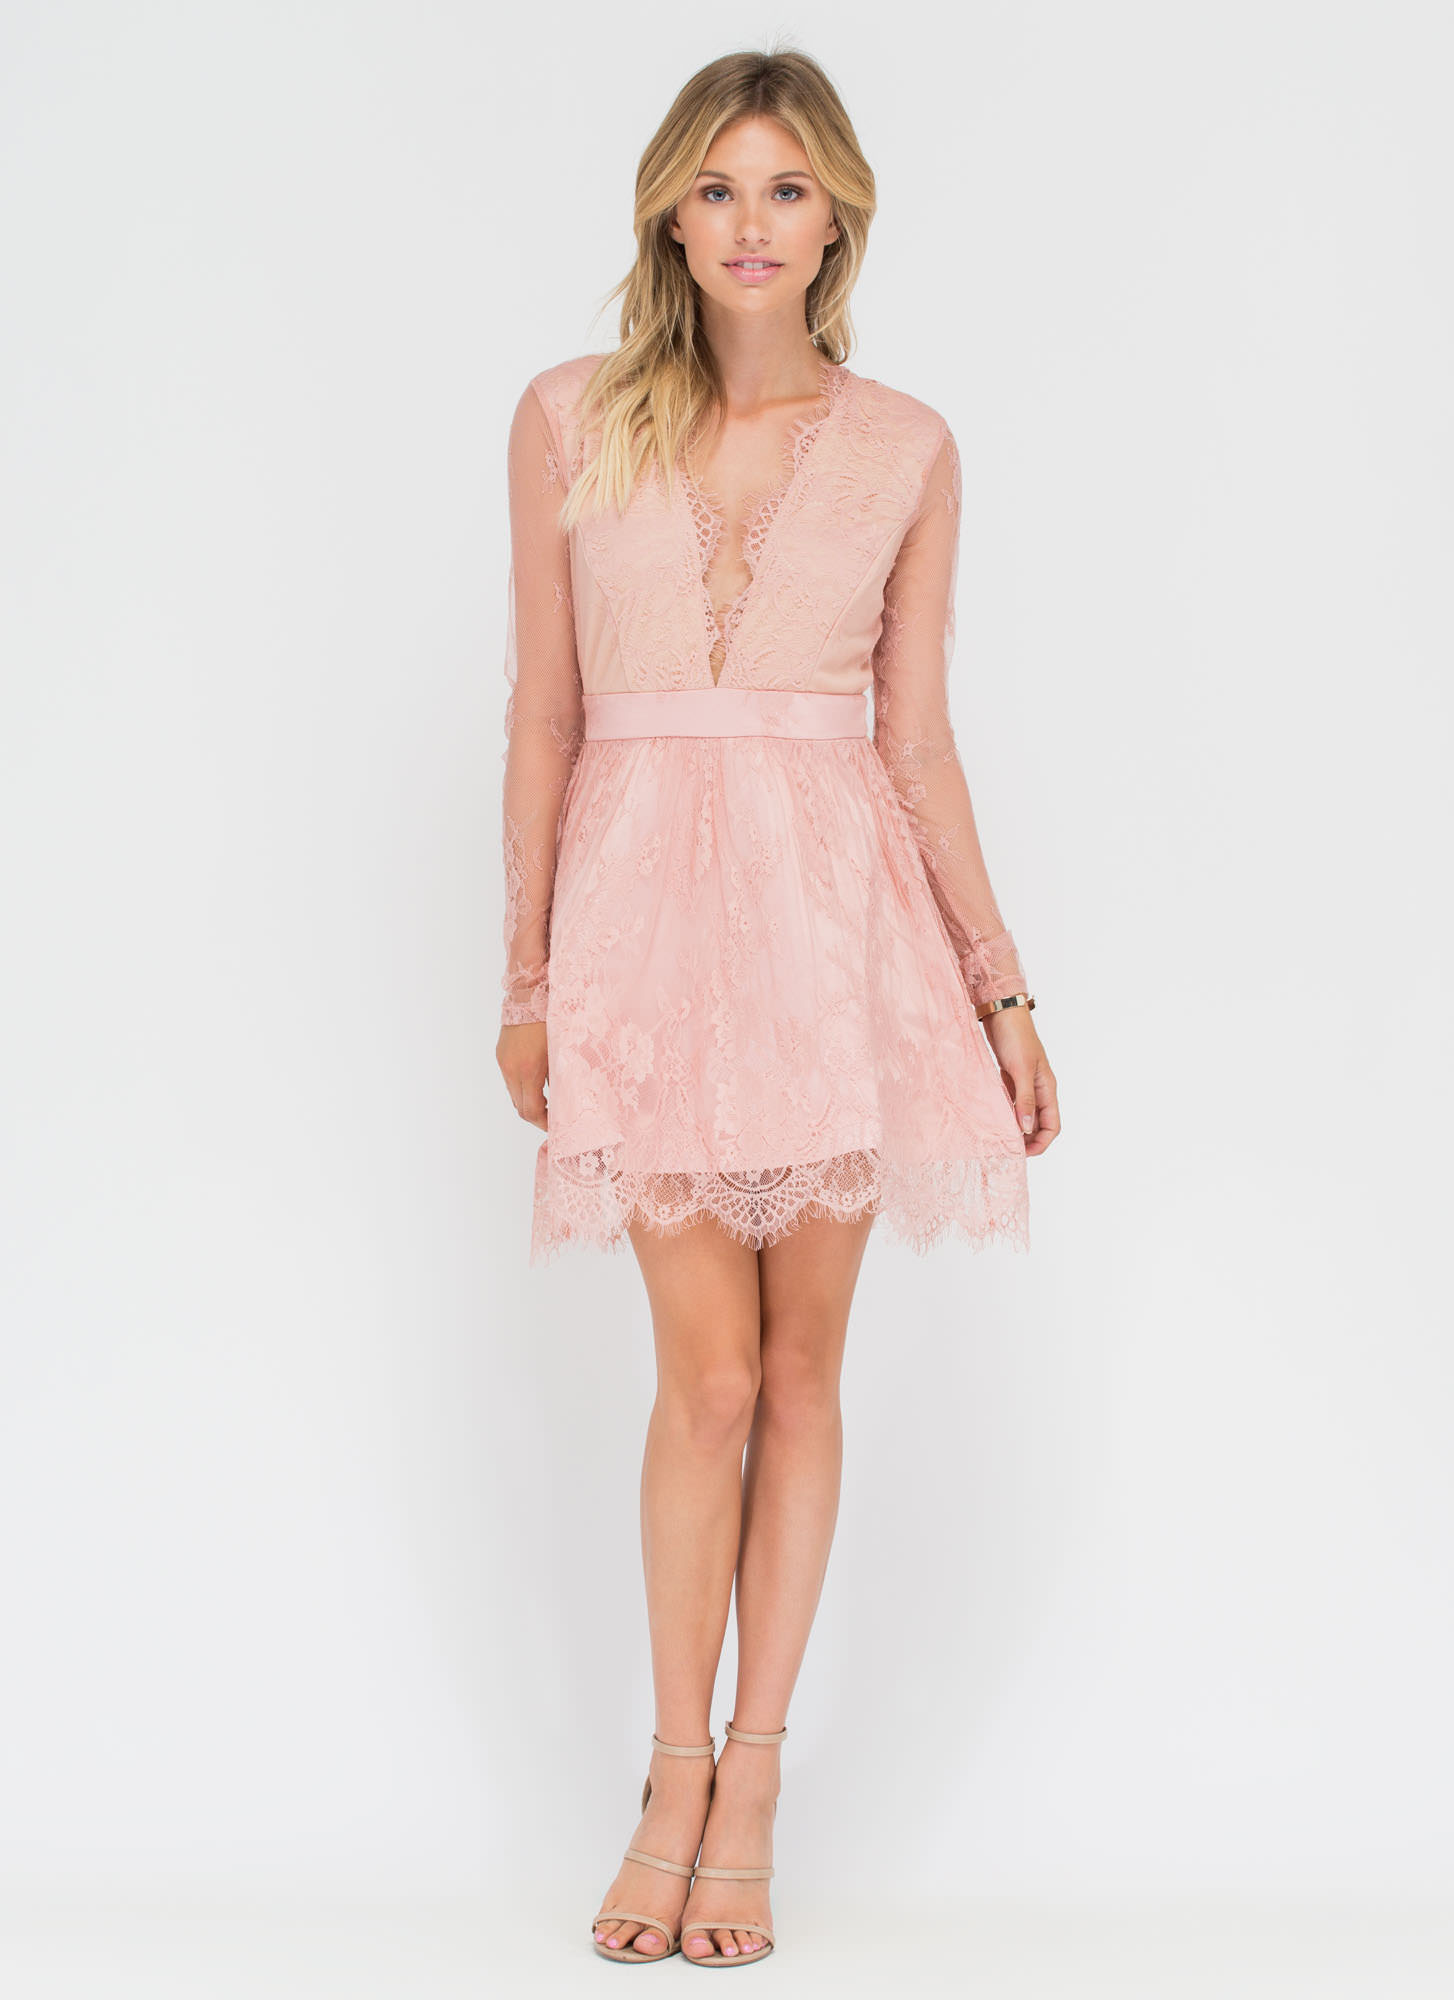 Sheer Bliss Plunging Lace Dress BLUSH